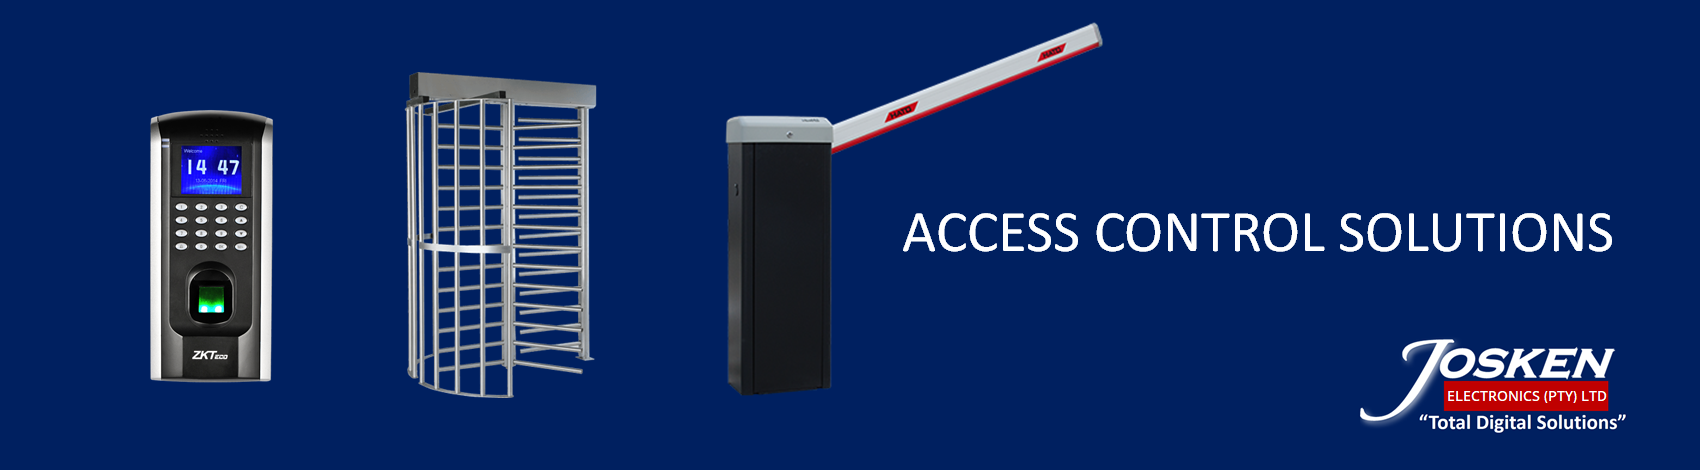 ACCESS-CONTROL-BANNER